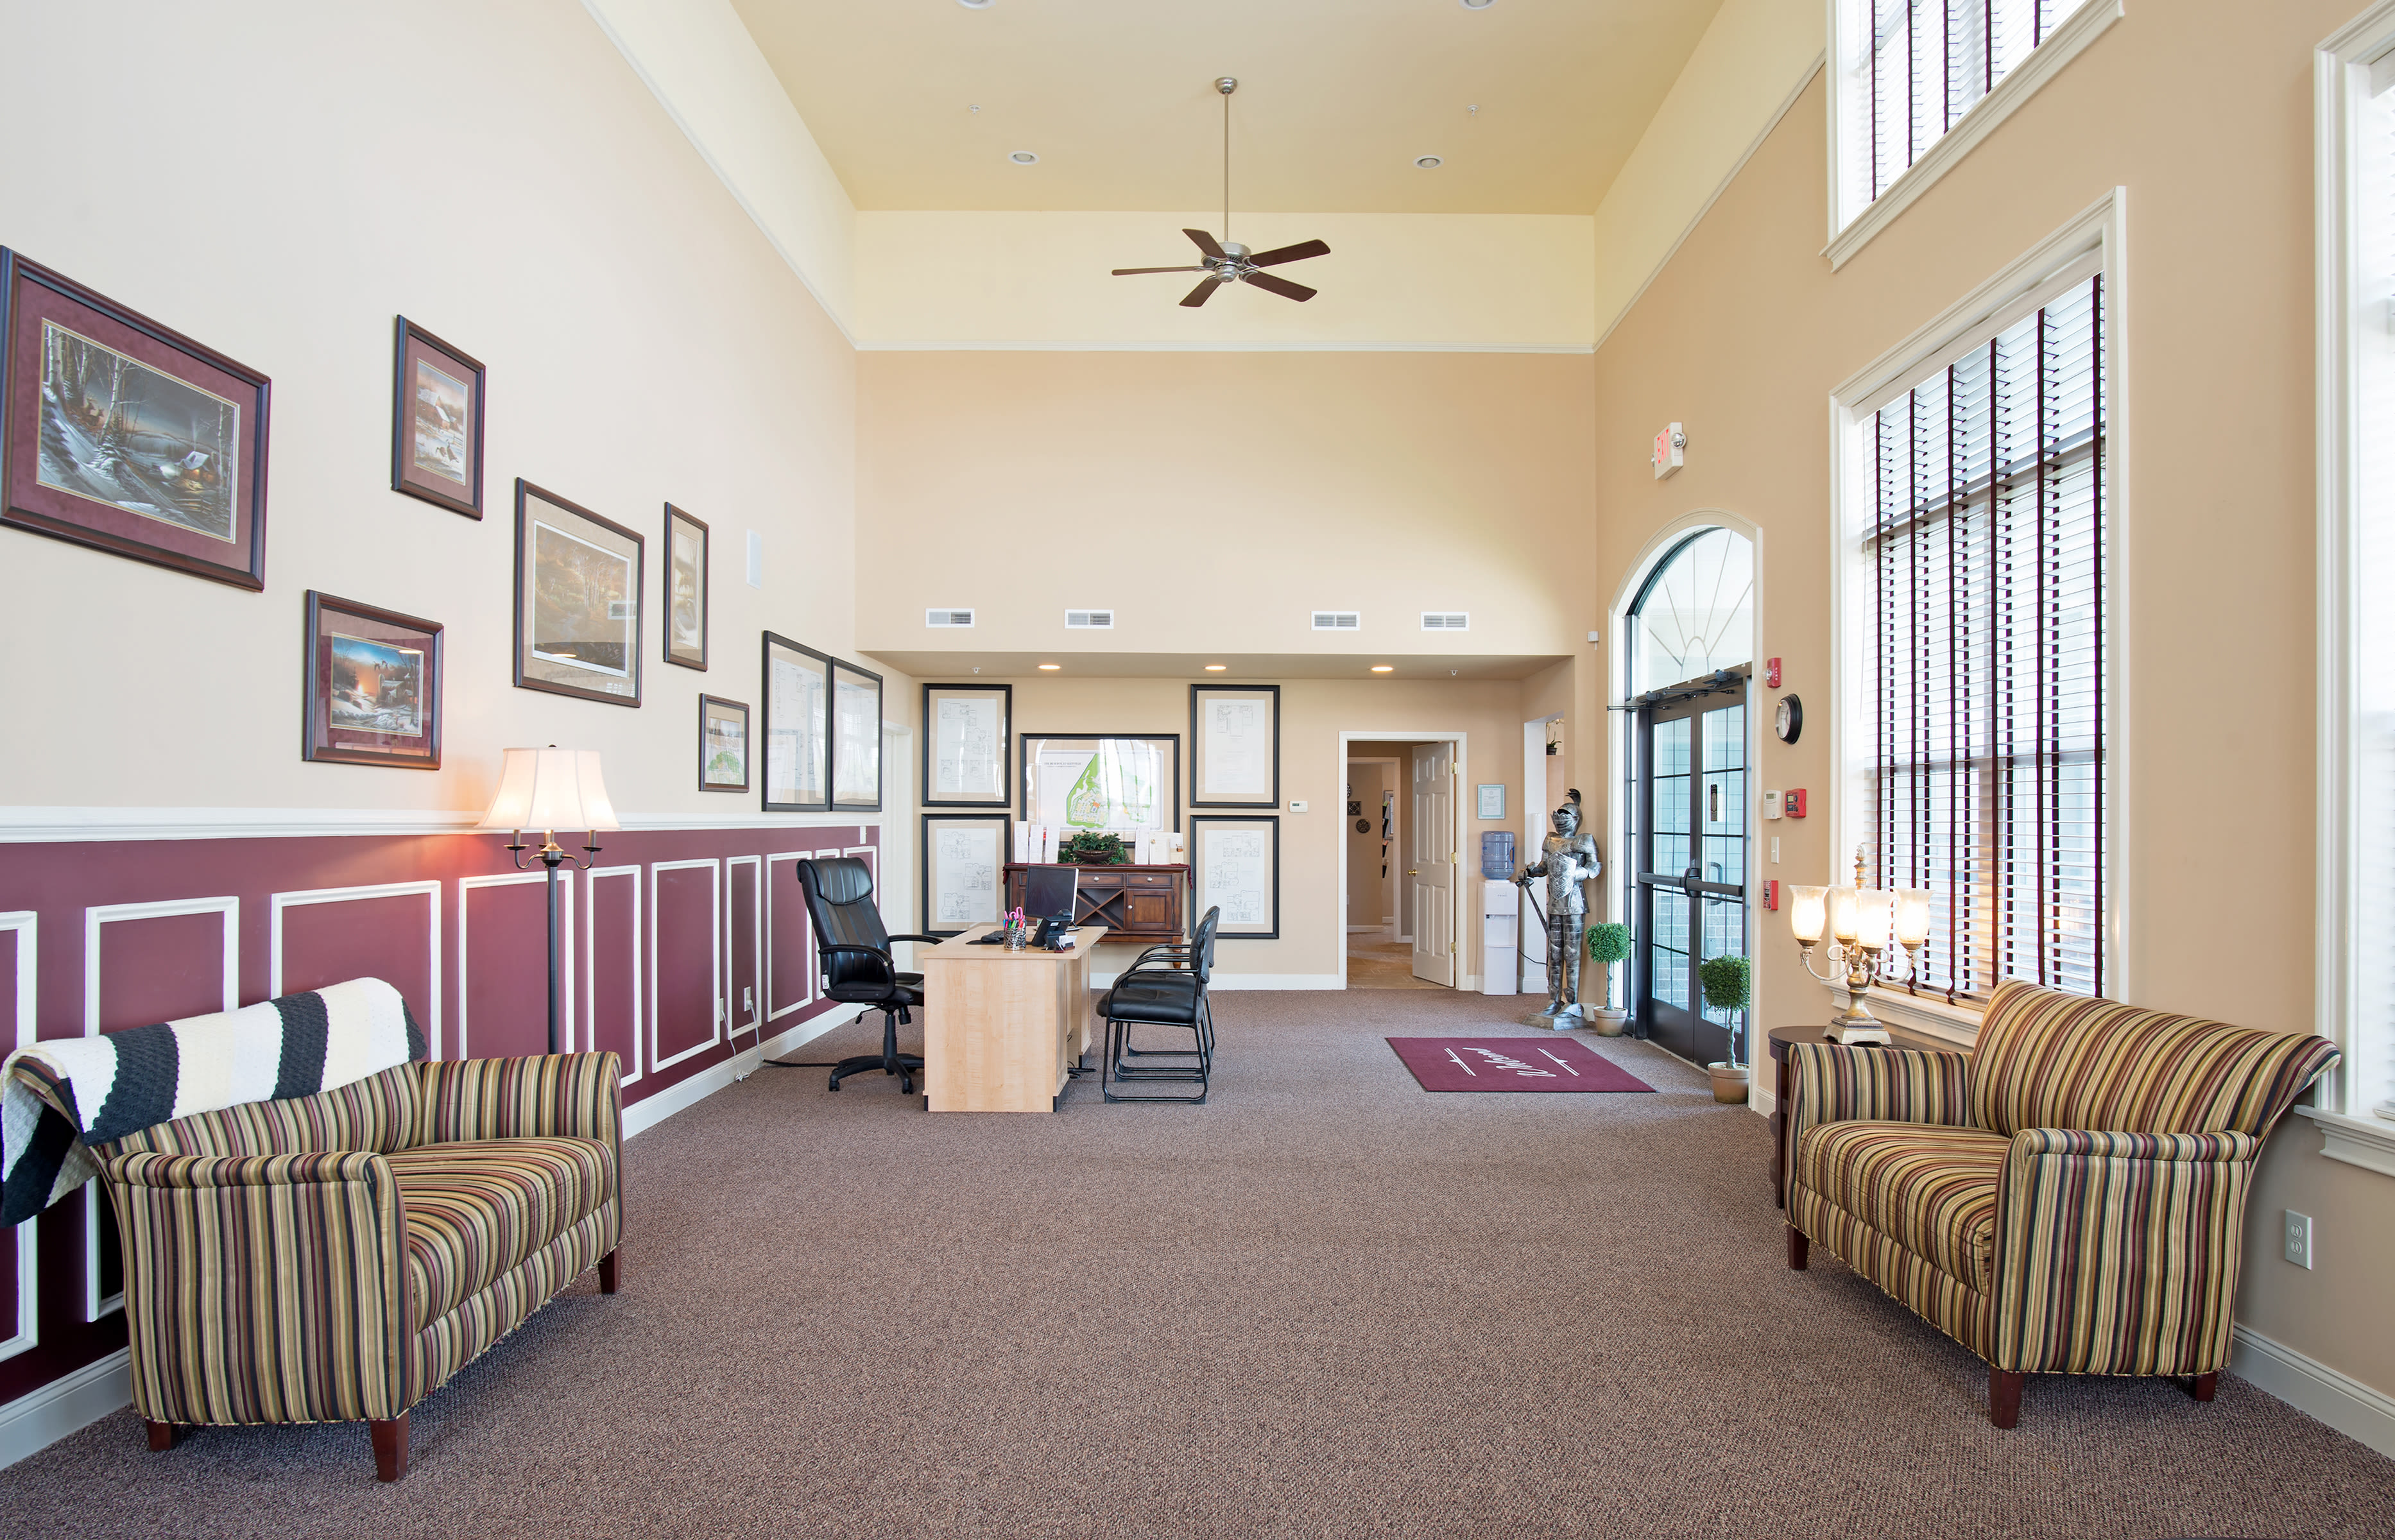 The Reserve at Glenville Apartment Homes is a nearby community of Niskayuna Gardens